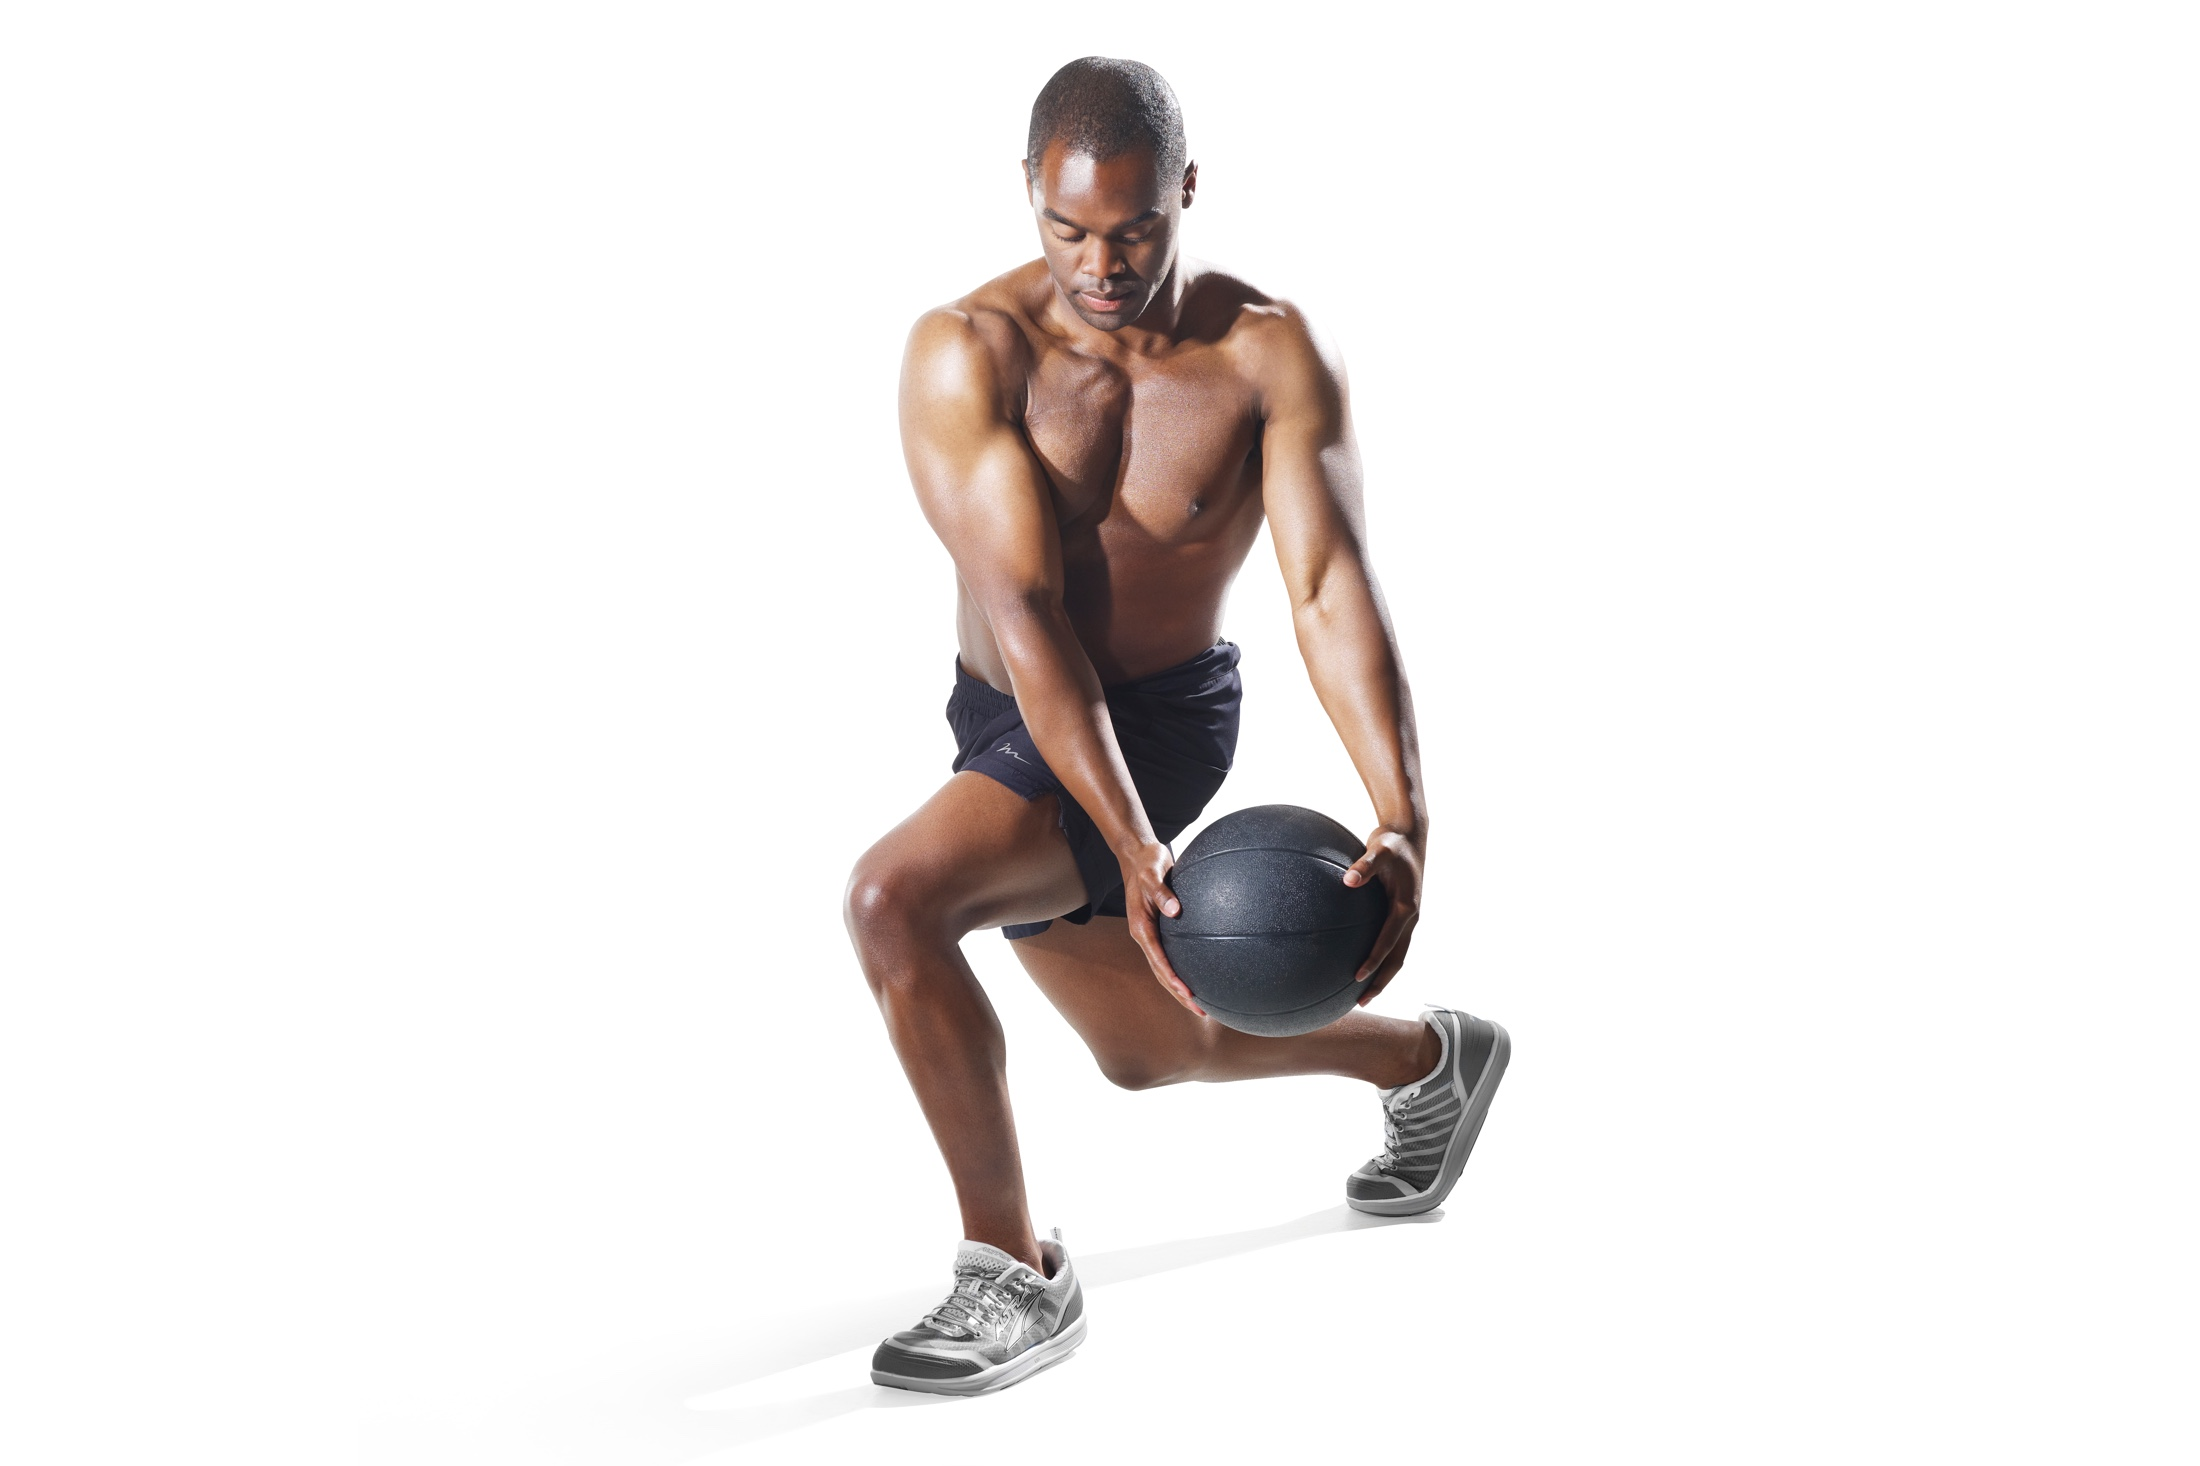 NordicTrack Gold's Gym 10 lb. Medicine Ball gallery image 5